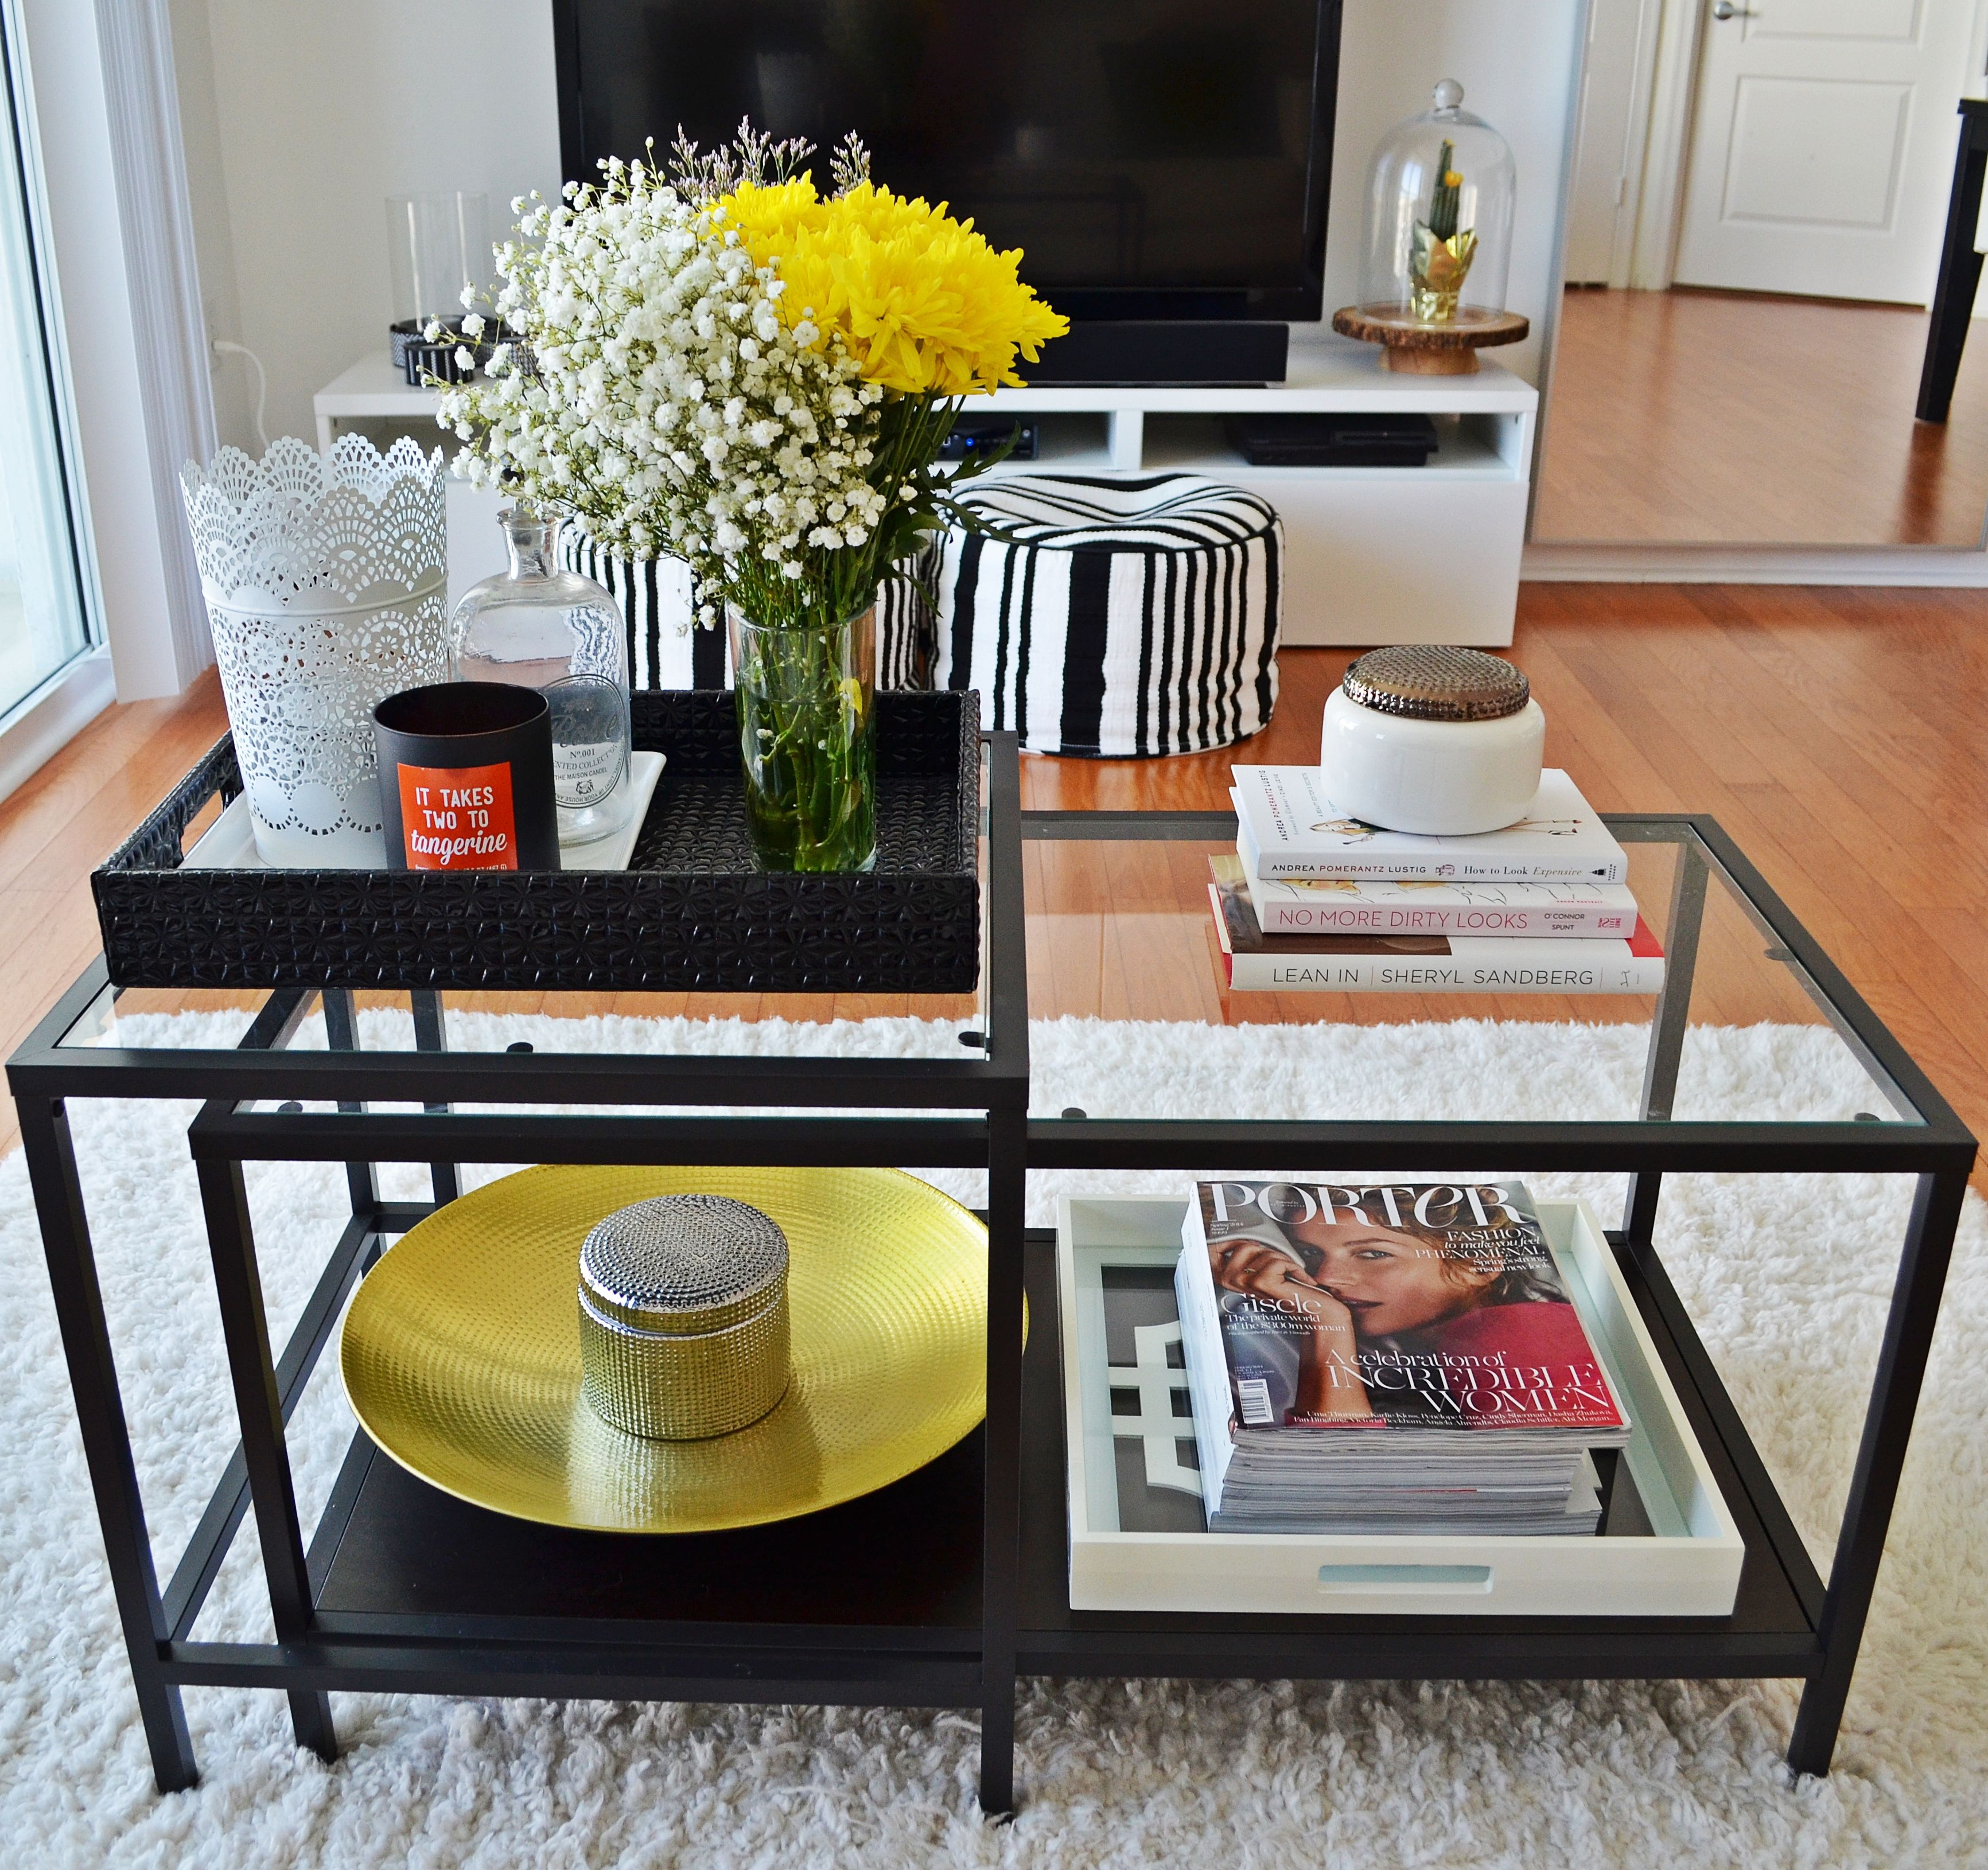 Yup This Is Going To Be My Coffee Table Wondering If I Should Do A Little Paint Job Hack And Make It Coffee Table Home Coffee Tables Glass Dining Table Decor [ 3260 x 3465 Pixel ]